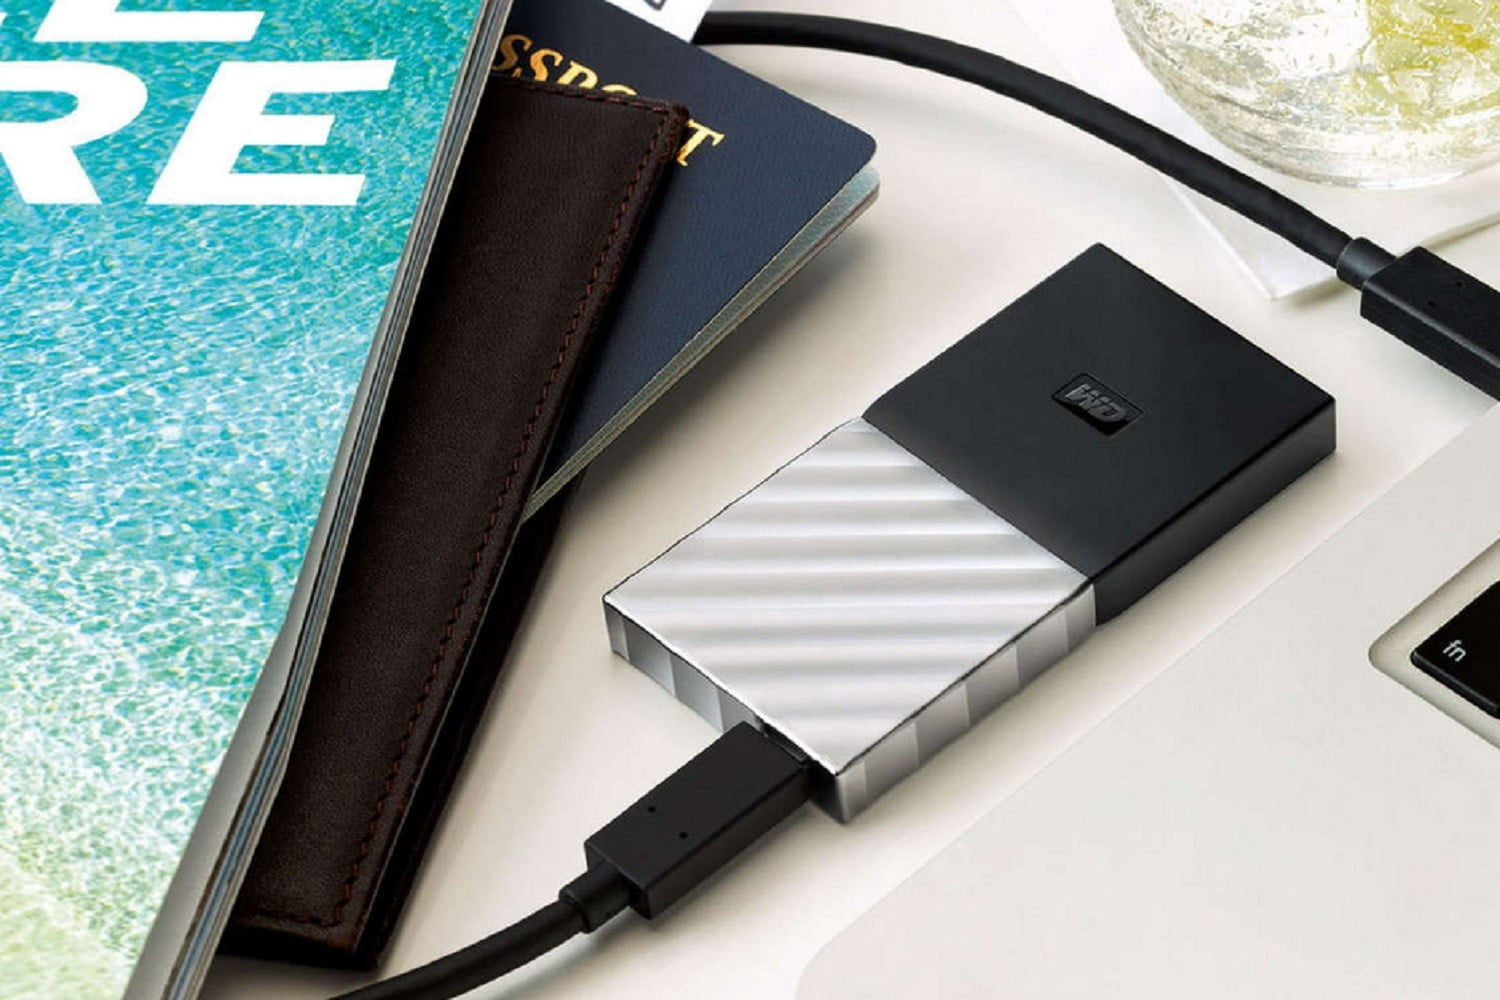 Product stock photo of WD My Passport SSD